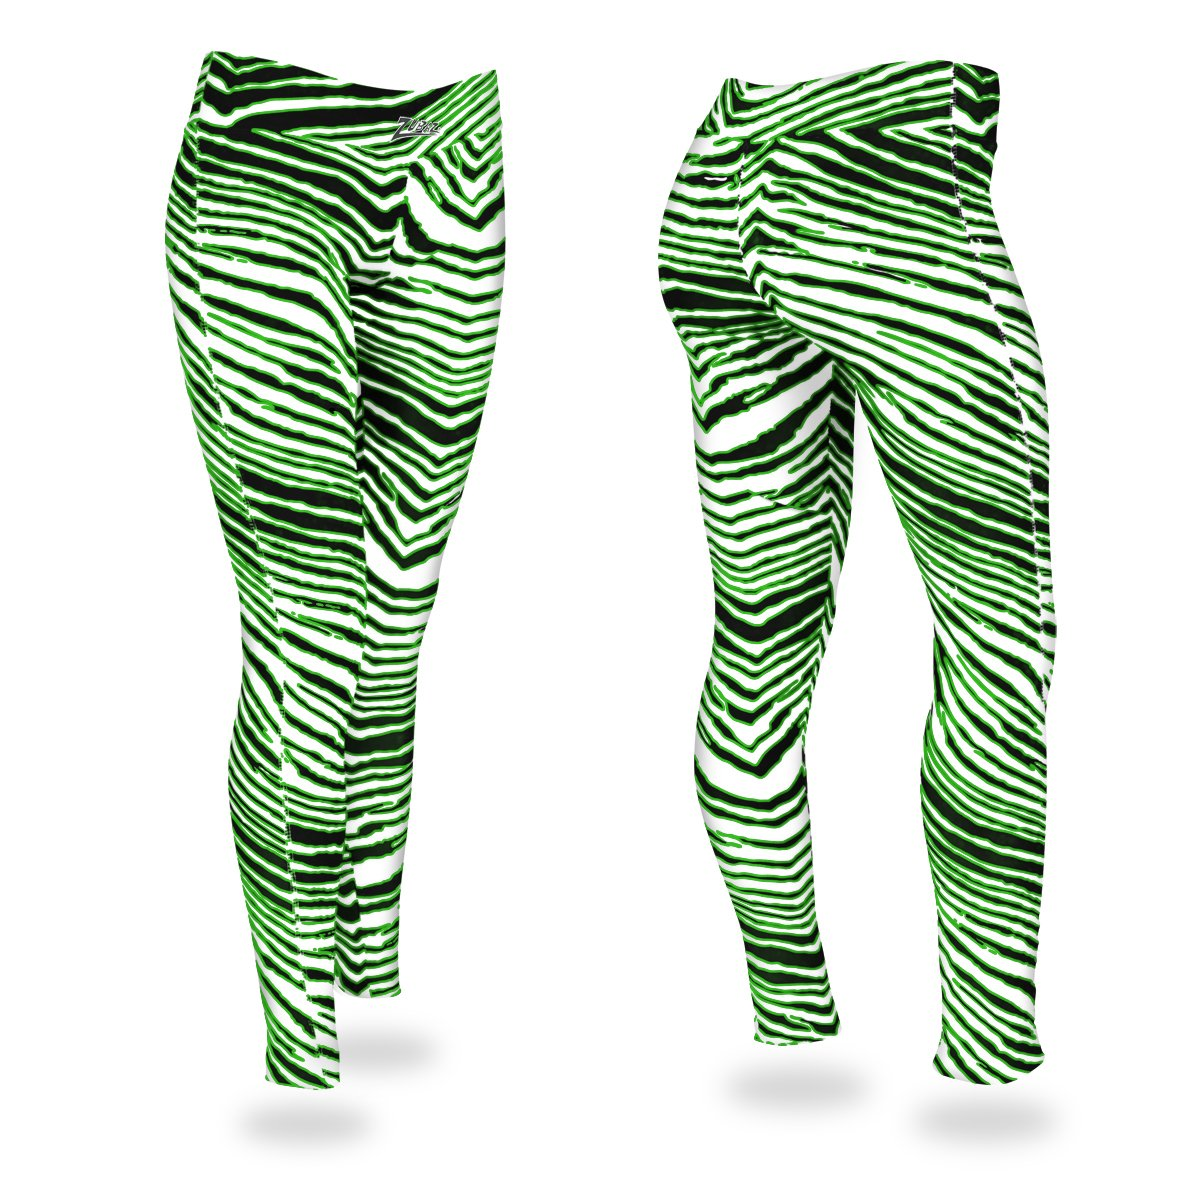 brandsego - Zubaz Zebra Print Slim Fit Trousers For Ladies-NA9254